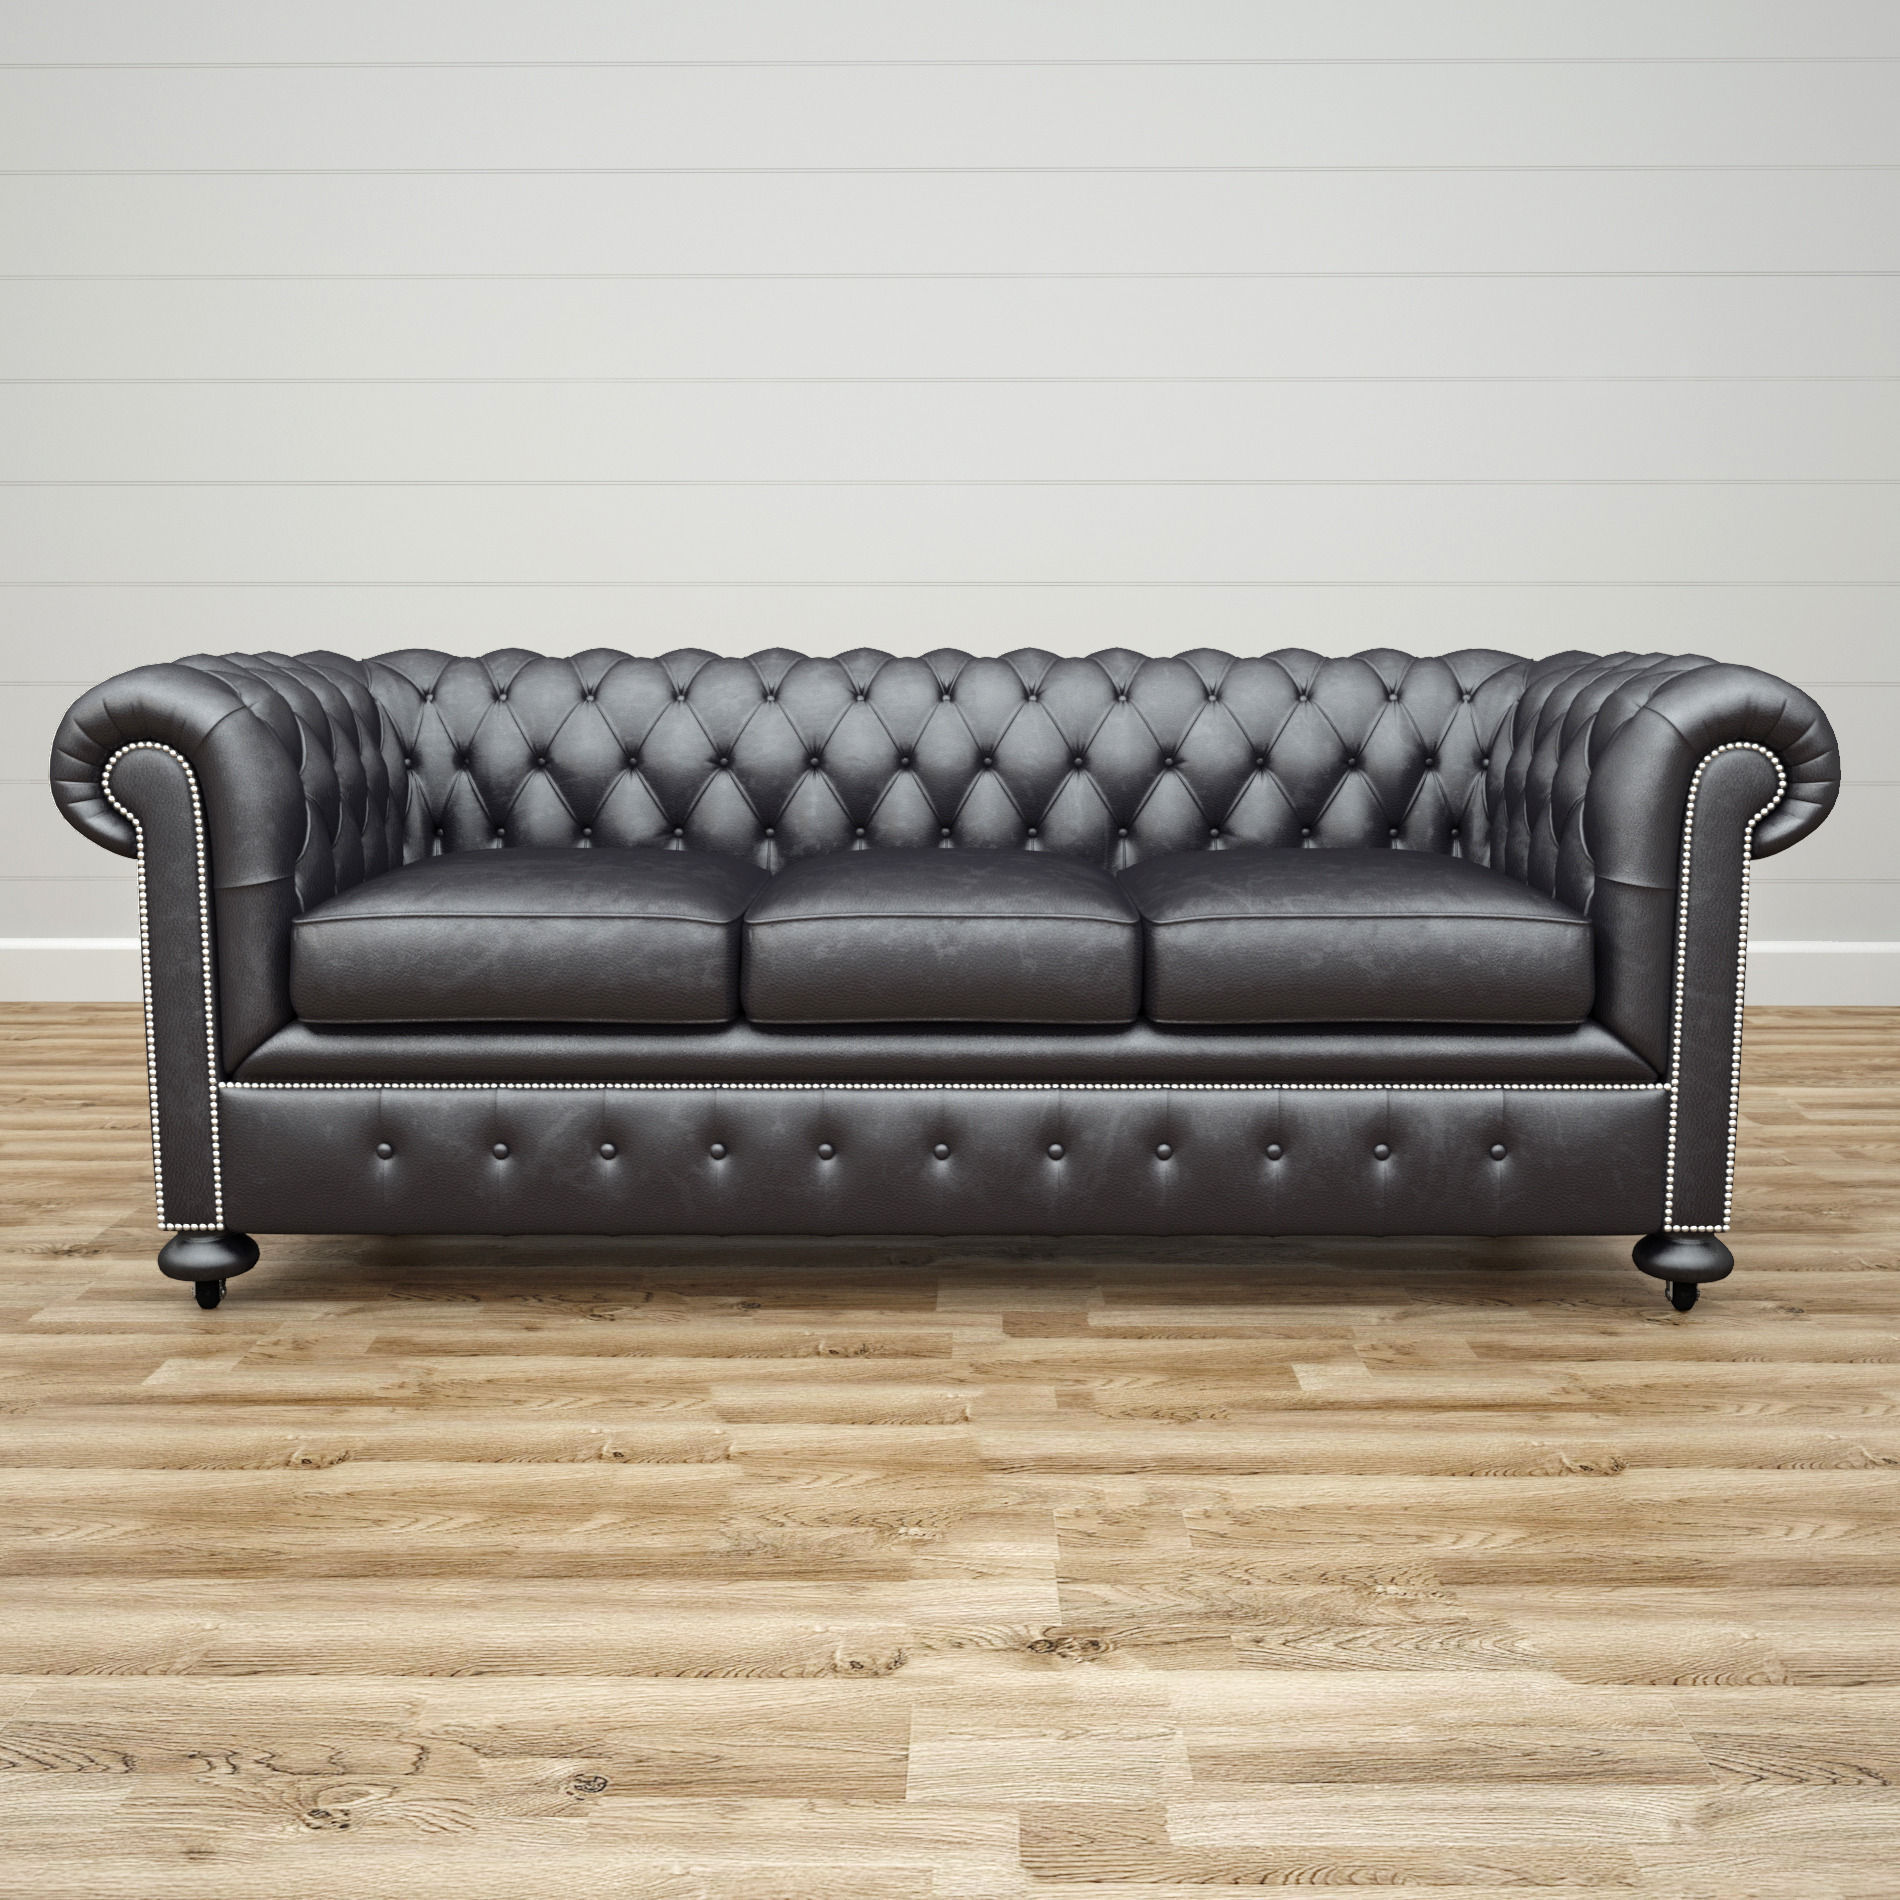 Superieur ... William Blake Sofa Chesterfield Leather Black 3d Model Max Obj 3ds Fbx  Mtl 2 ...